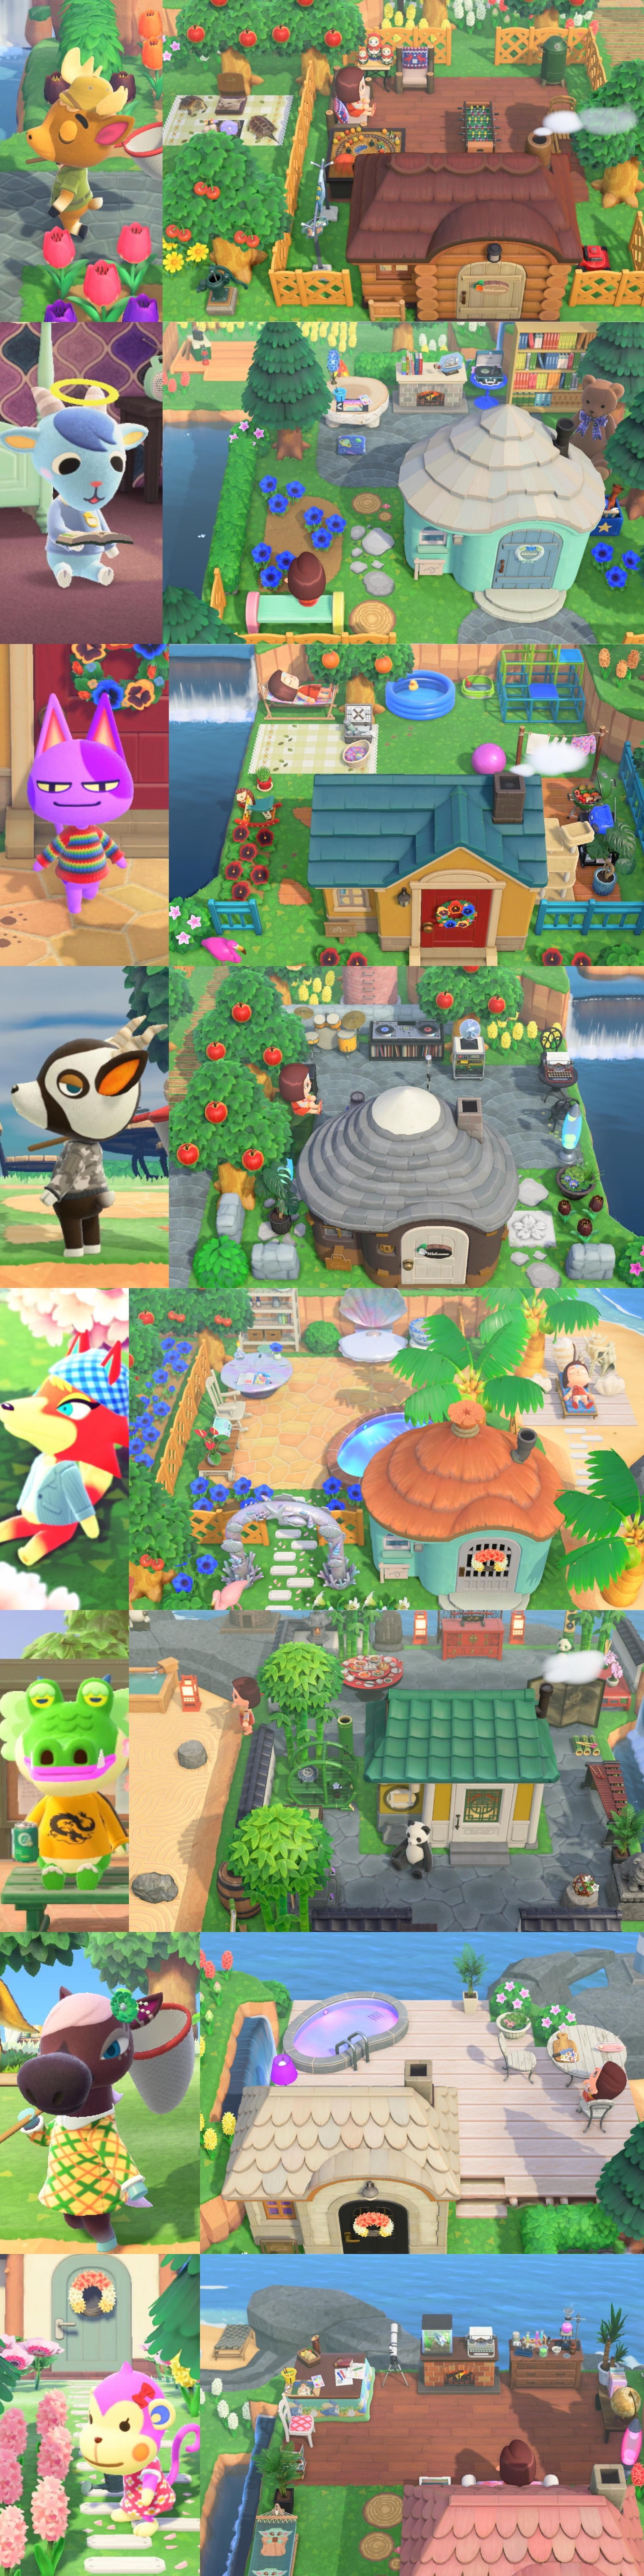 Villagers Yards Animal Crossing Villagers Animal Crossing Funny Animal Crossing Fan Art